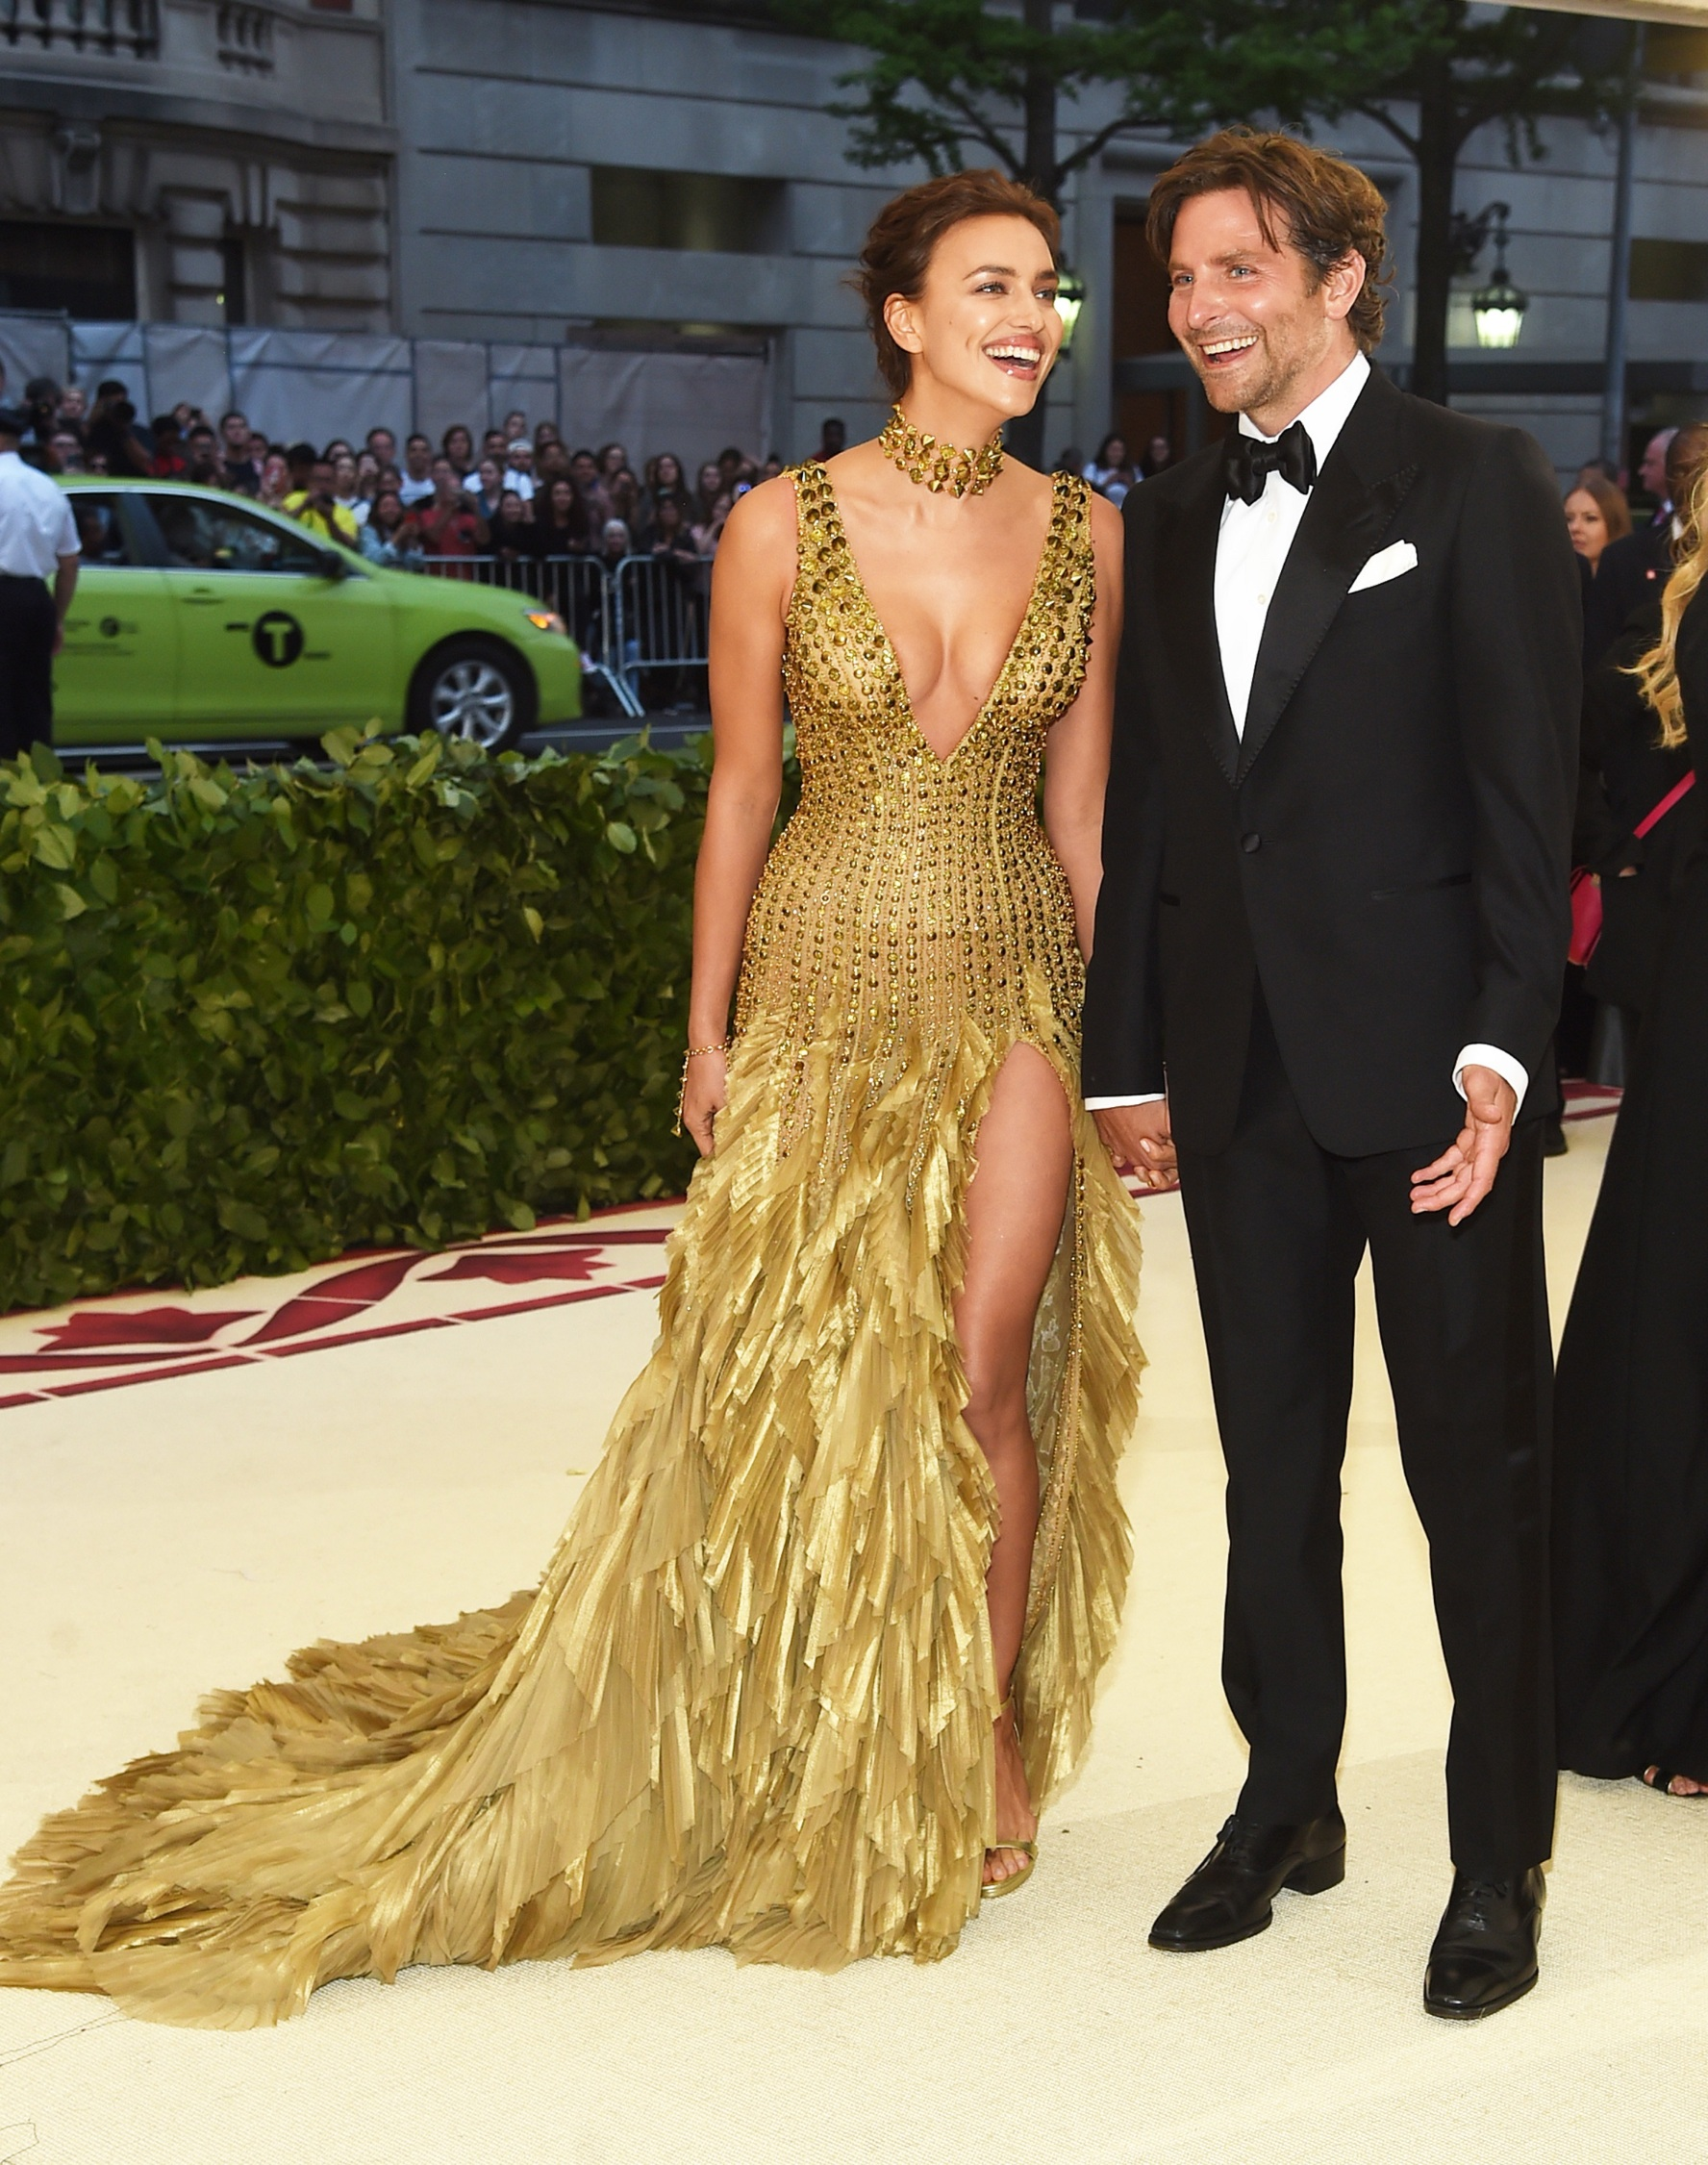 NEW YORK, NY - MAY 07:  Irina Shayk and Bradley Cooper attend the Heavenly Bodies: Fashion & The Catholic Imagination Costume Institute Gala at The Metropolitan Museum of Art on May 7, 2018 in New York City.  (Photo by Jamie McCarthy/Getty Images)